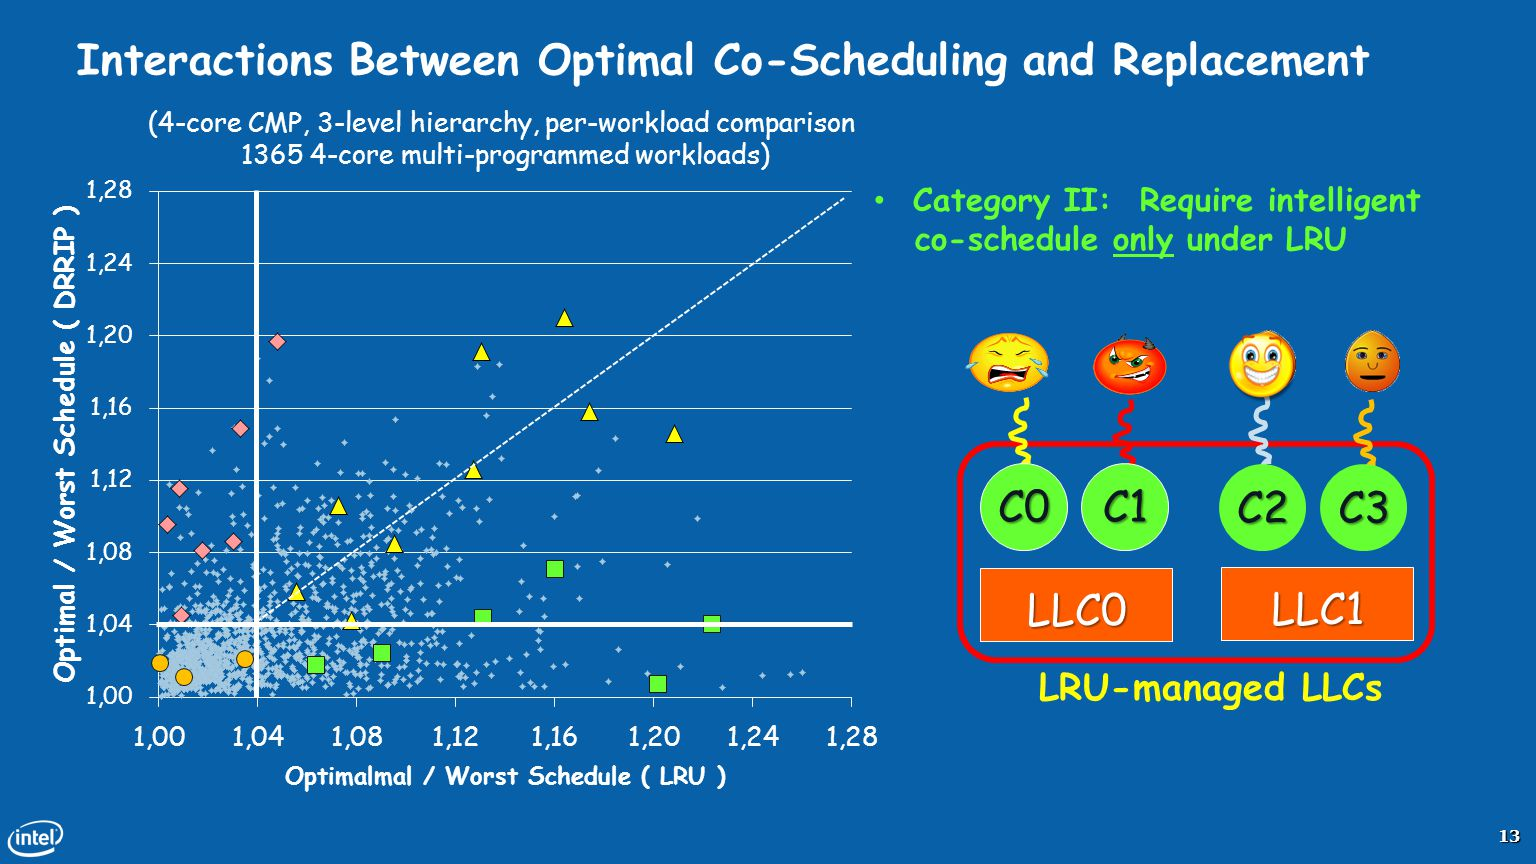 Interactions Between Optimal Co-Scheduling and Replacement